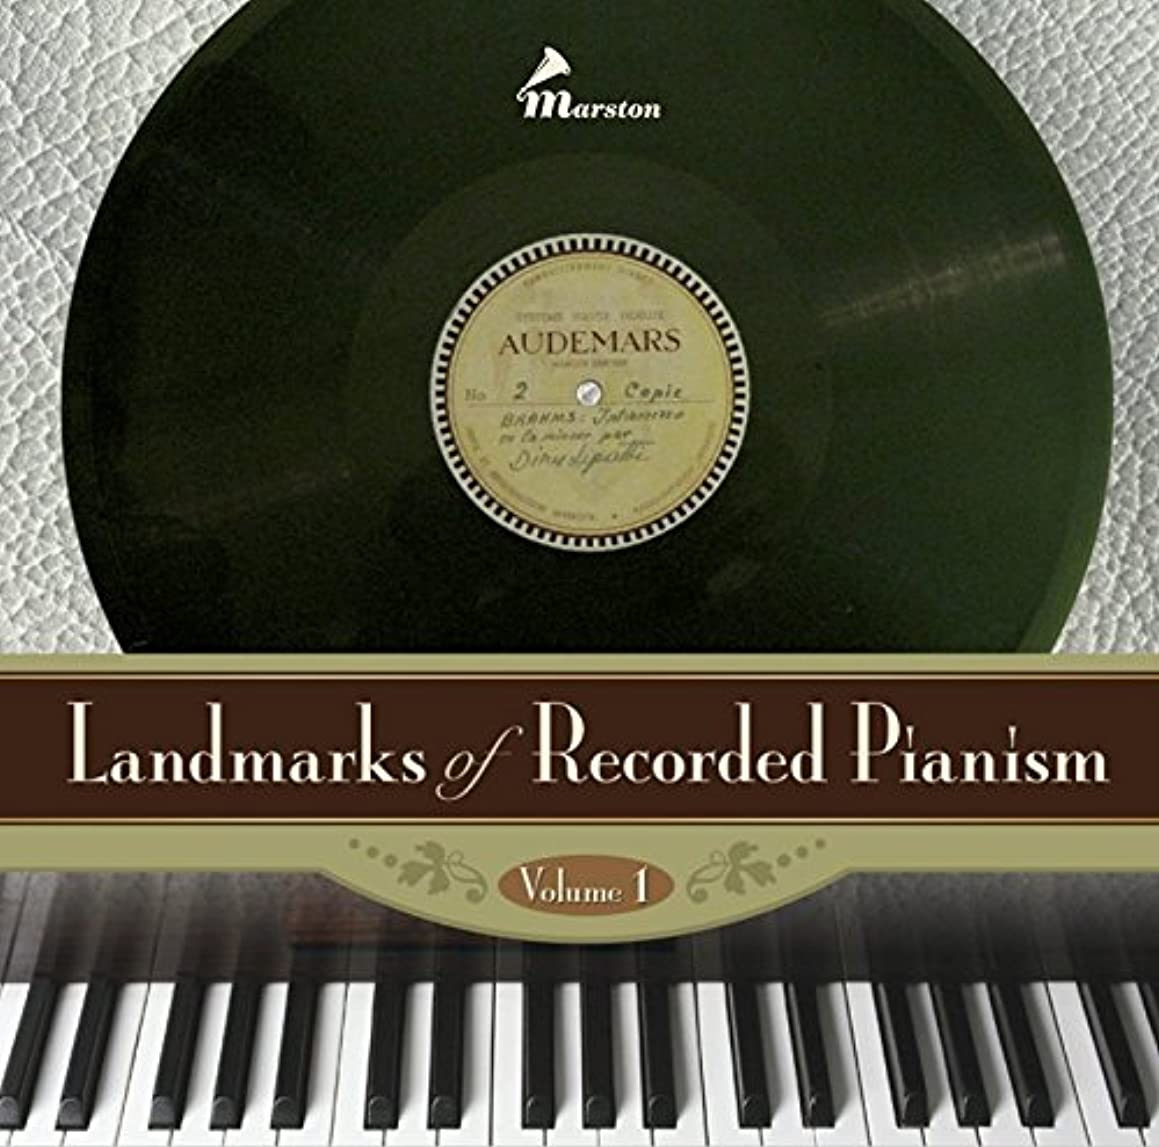 Landmarks of Recorded Pianism, Volume 1